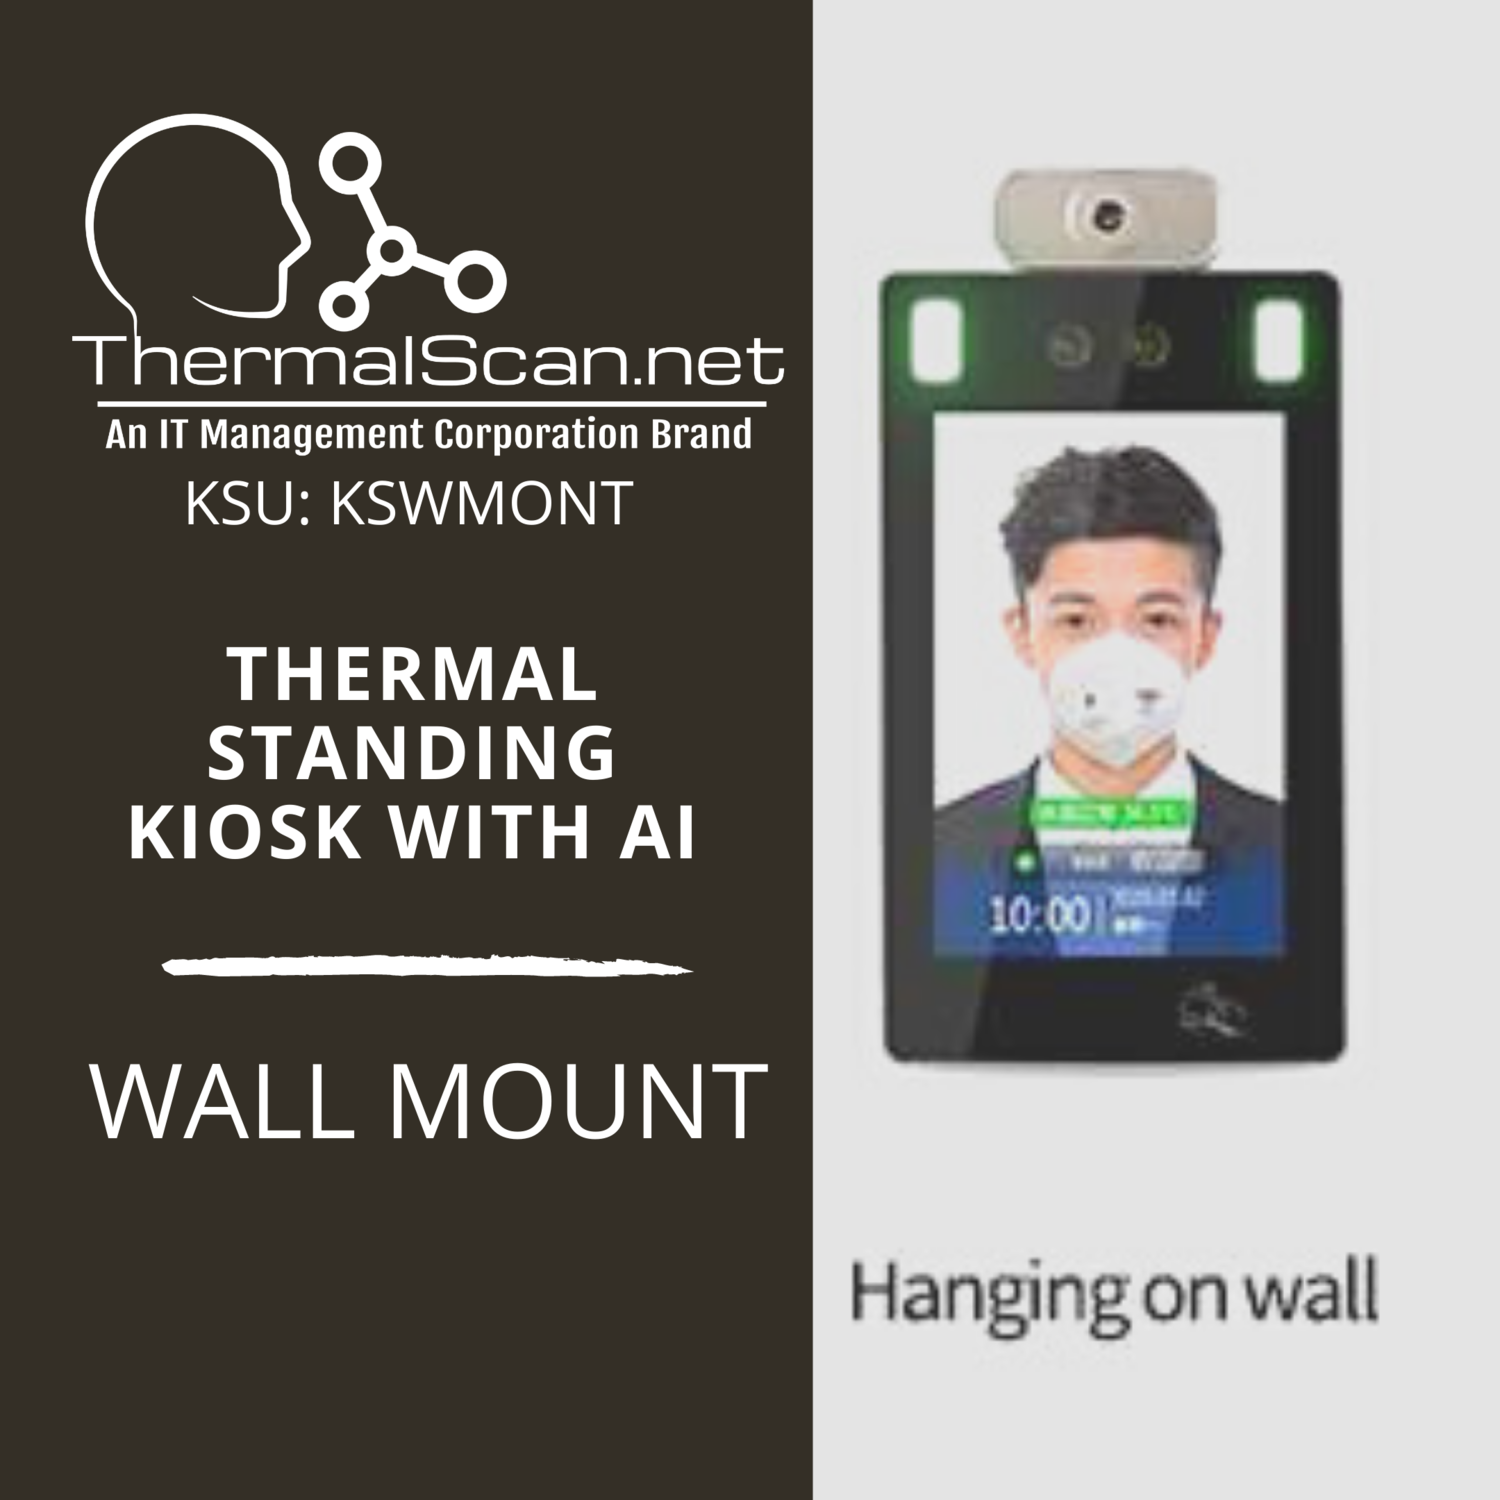 Wall Mount Stand for Temperature Scanning Kiosk